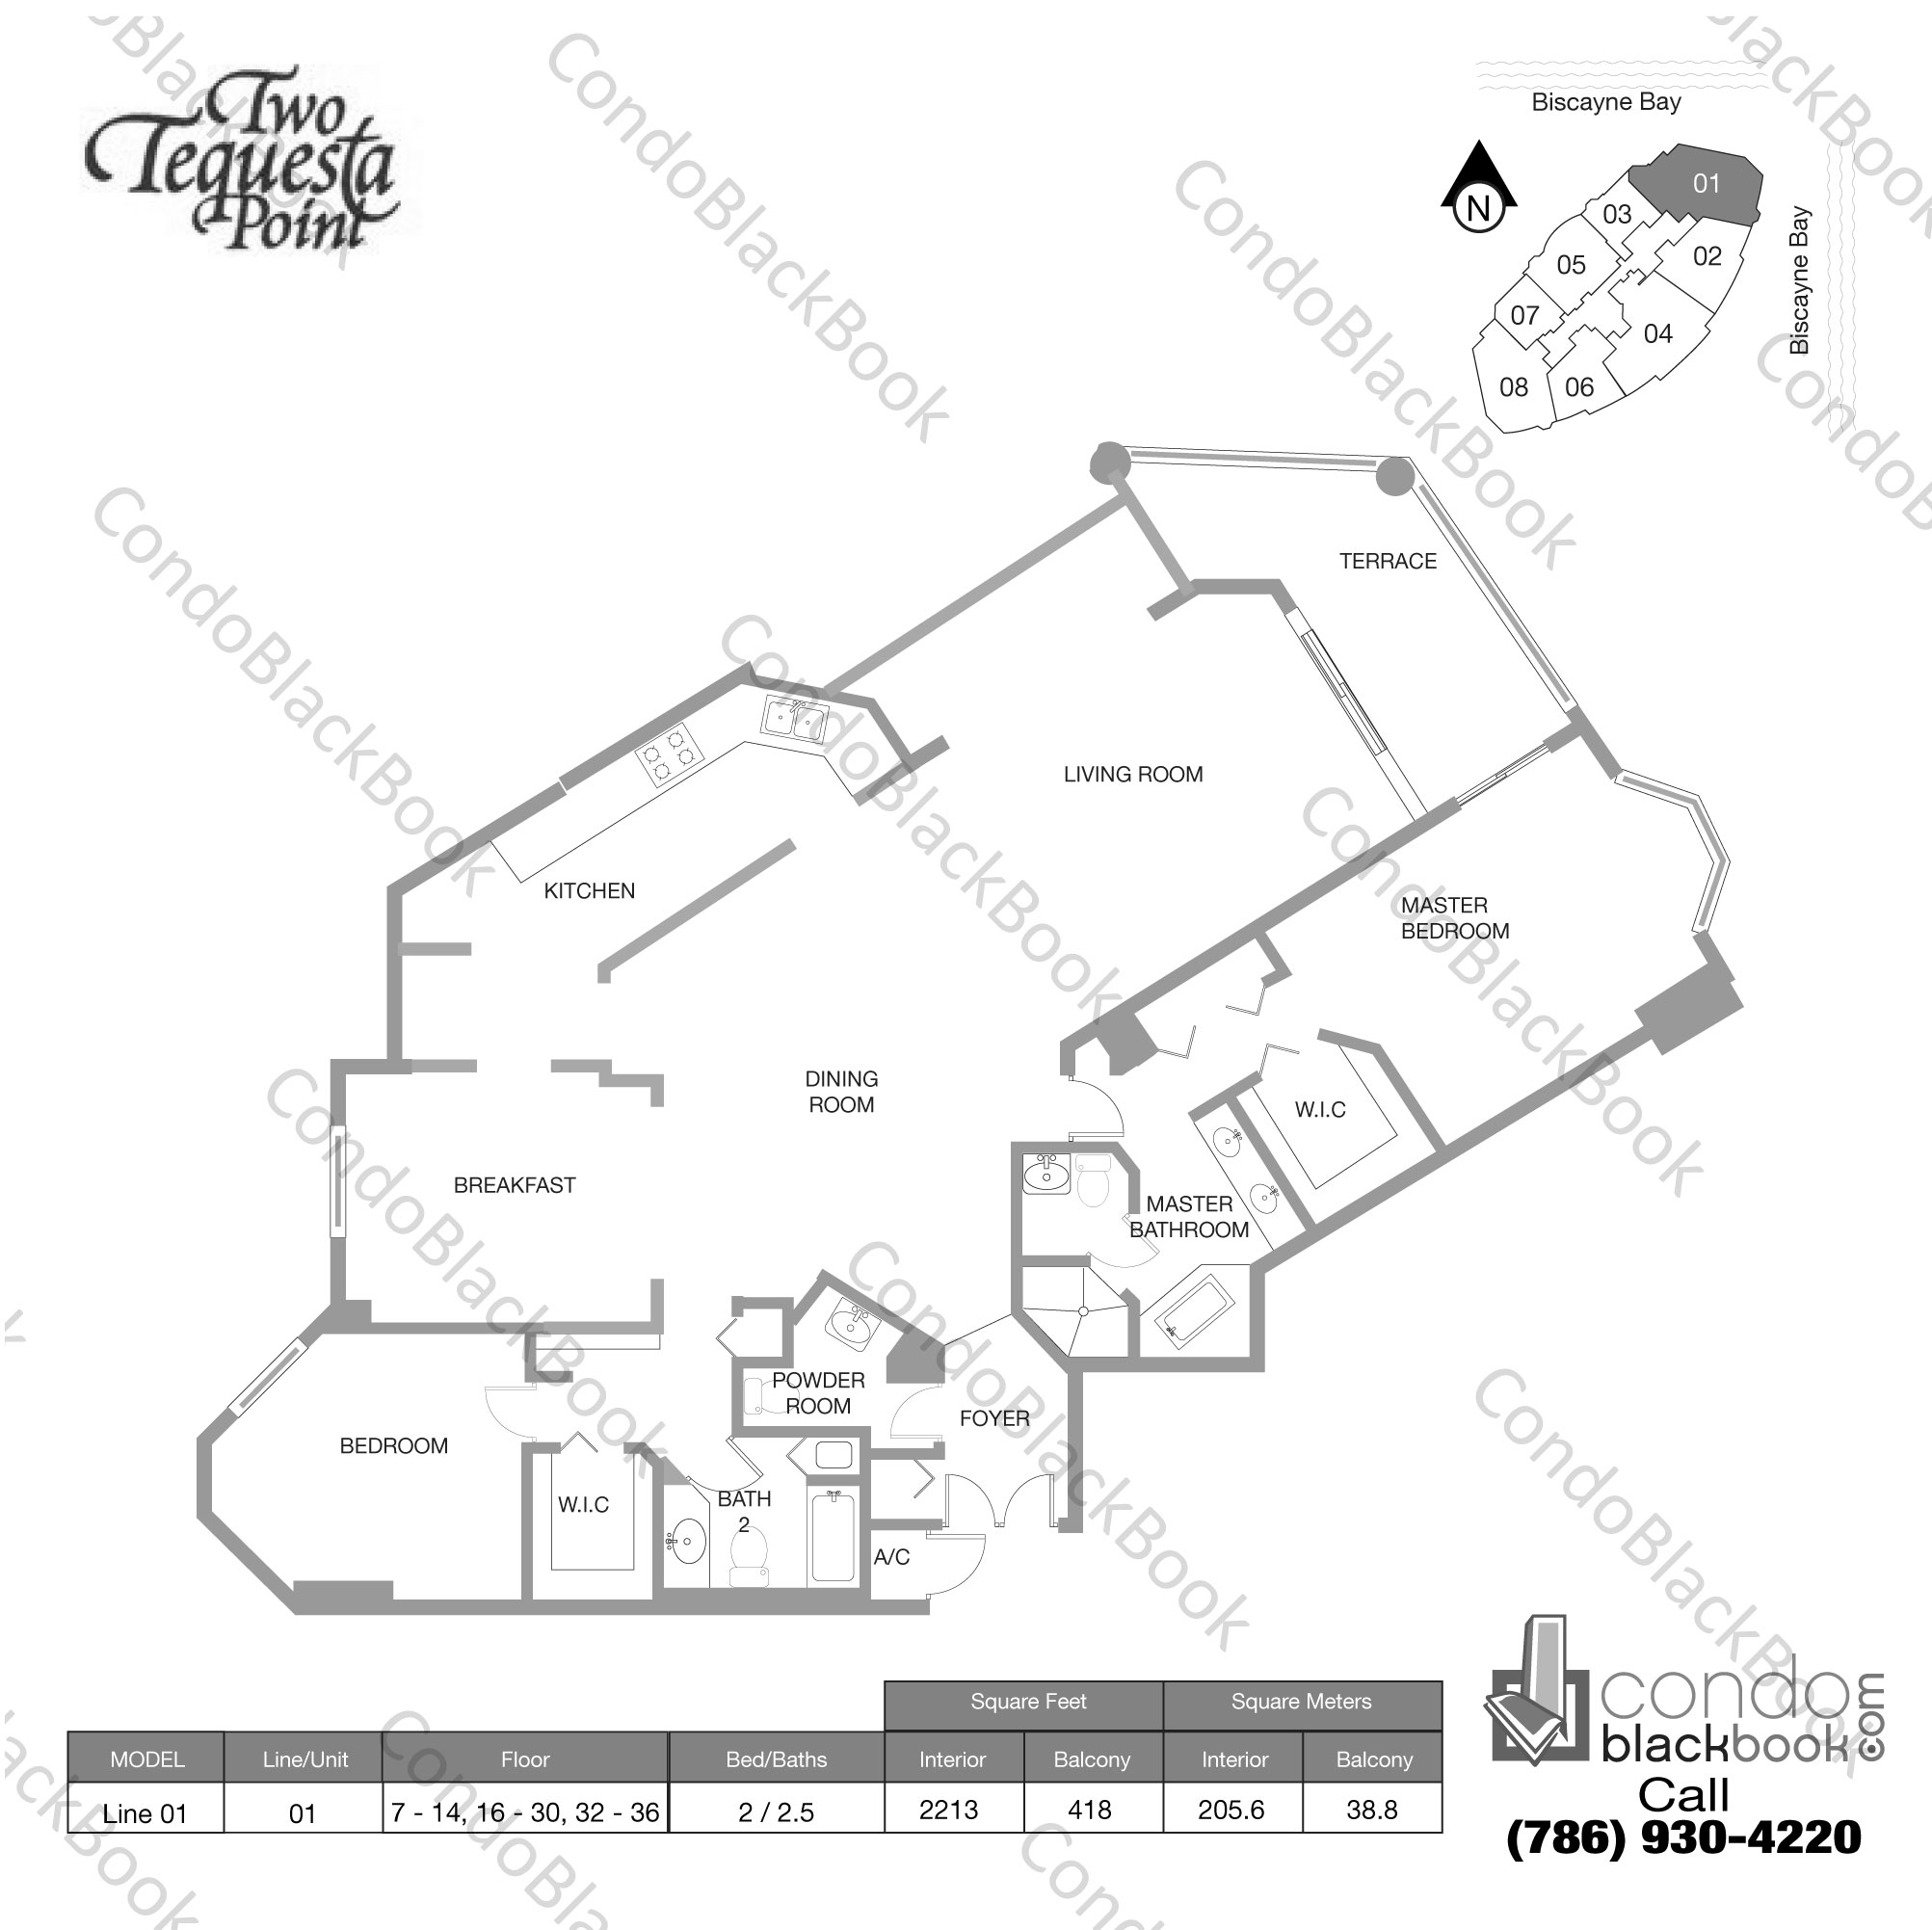 Floor plan for Two Tequesta Point Brickell Key Miami, model Line 01, line 01, 2 / 2.5 bedrooms, 2213 sq ft